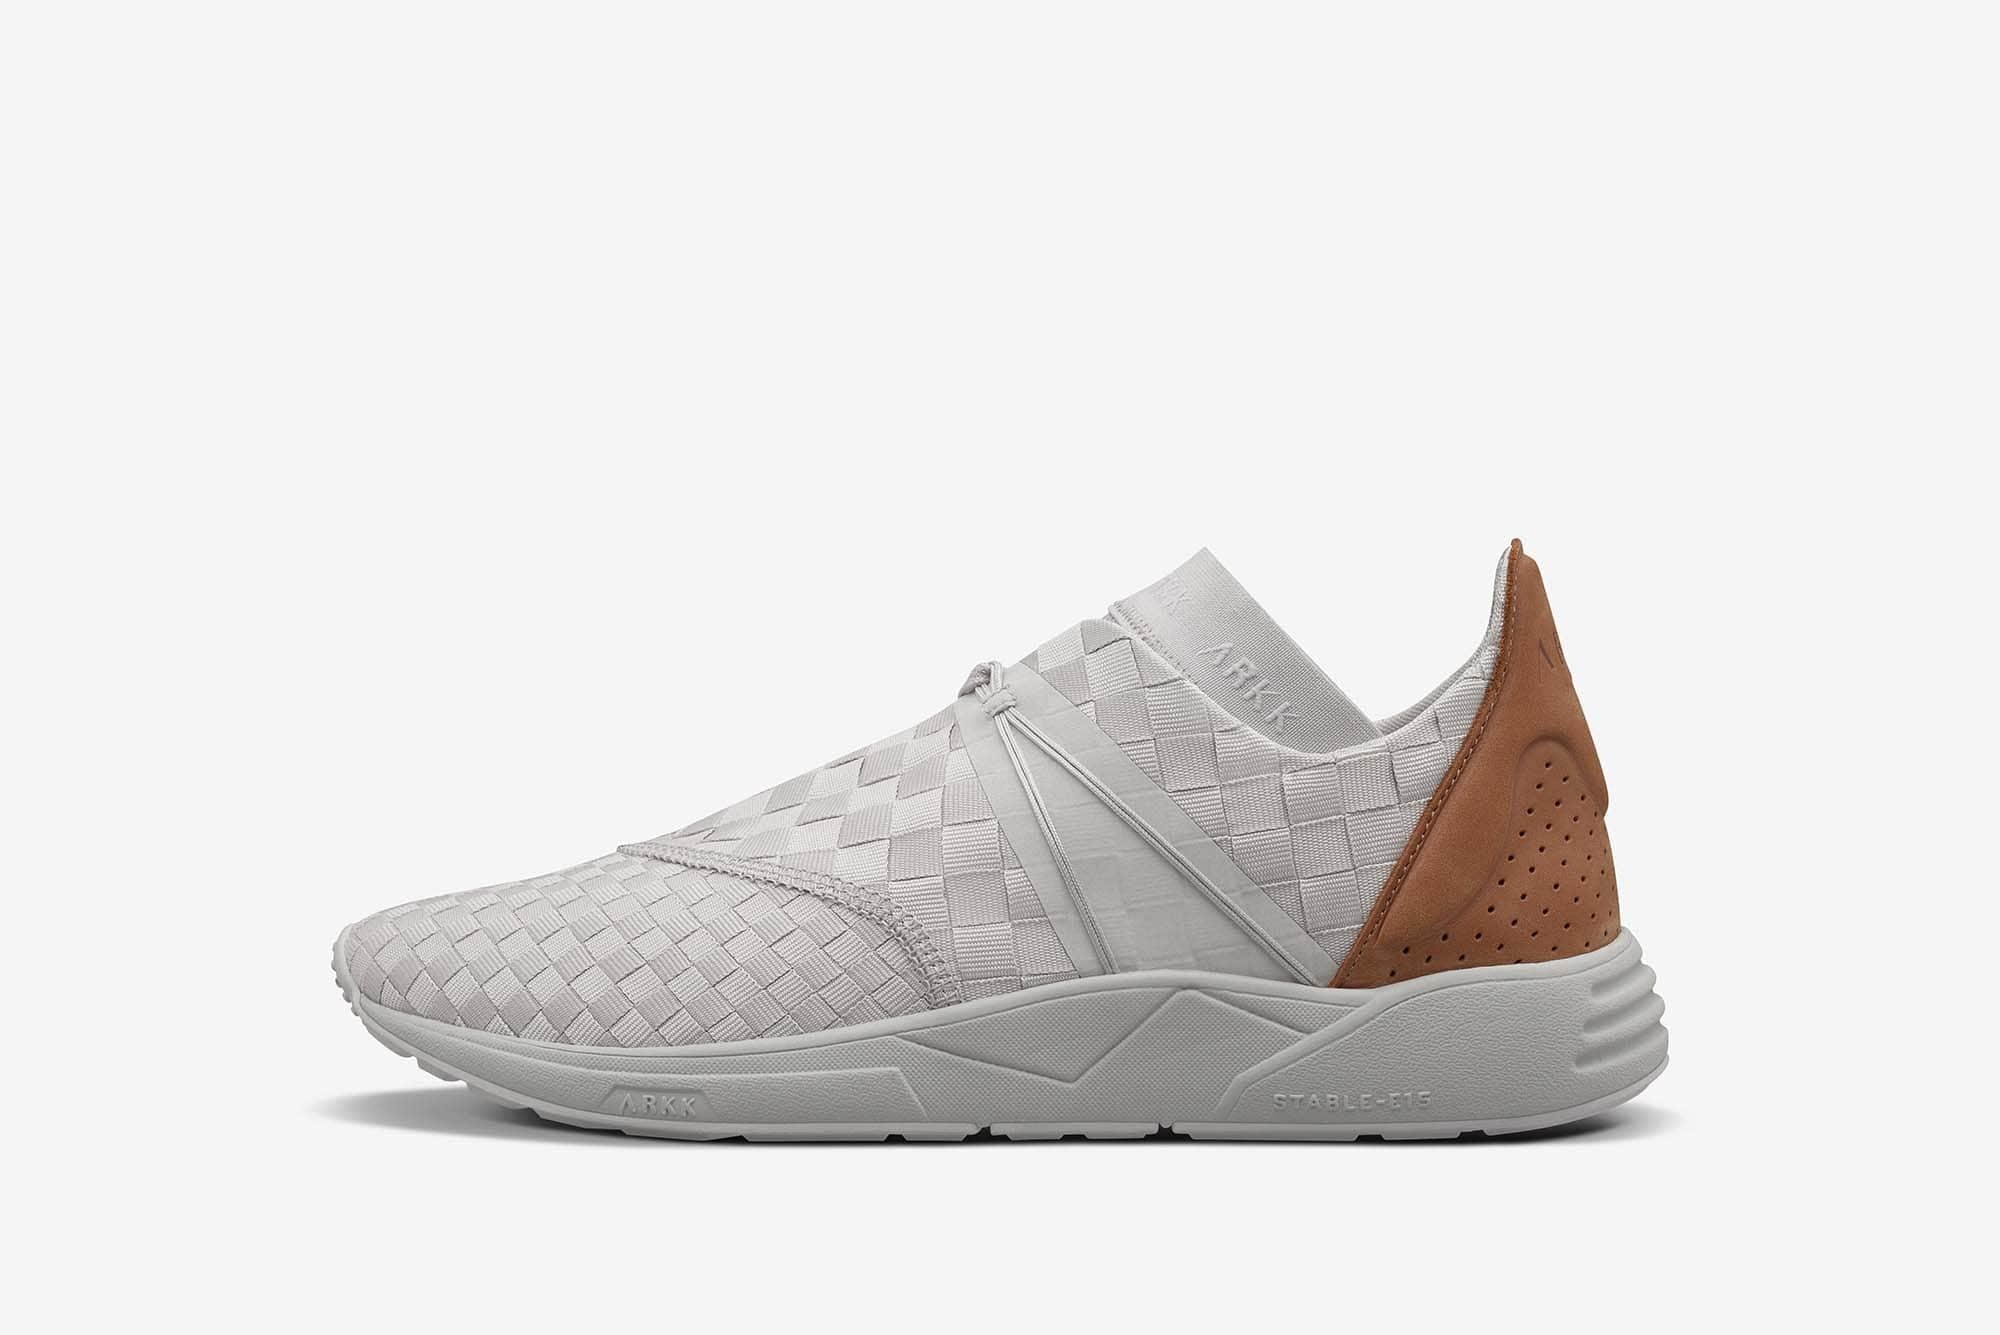 ARKK Copenhagen - Main Line Eaglezero Braided S-E15 Wind Grey Brown-Women Eaglezero Wind Grey